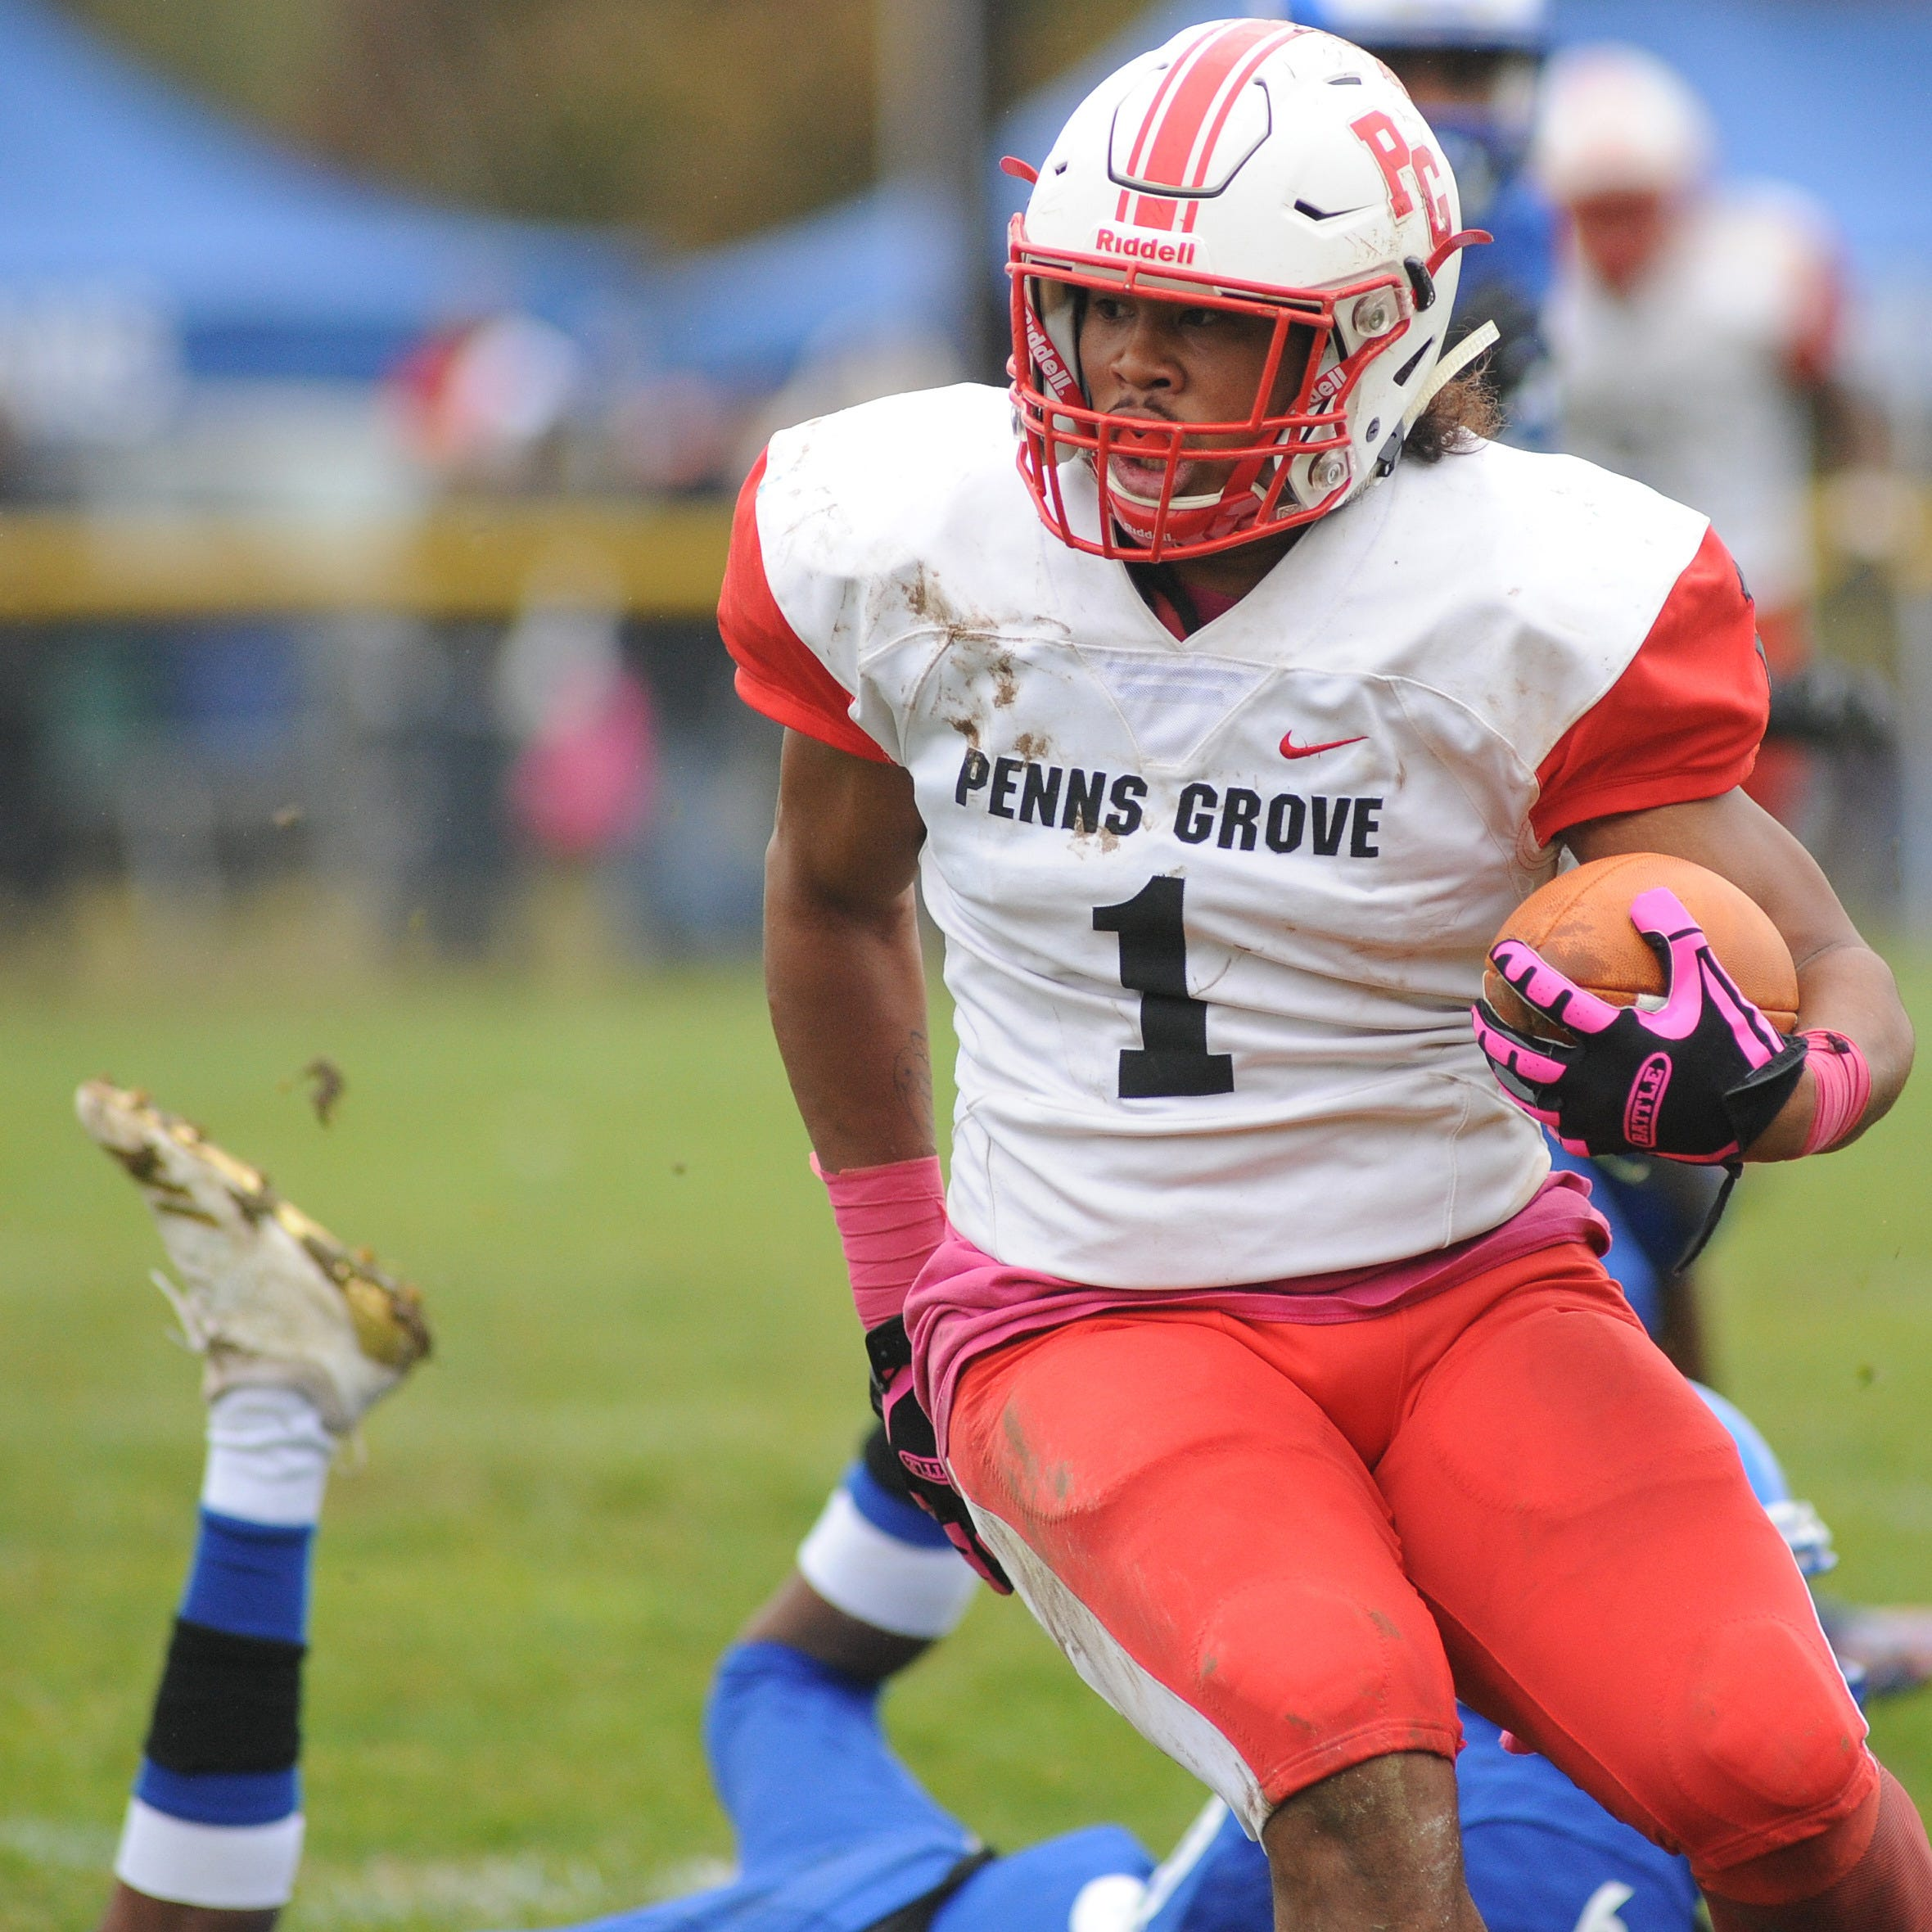 South Jersey football: Penns Grove downs Buena to reach sectional final